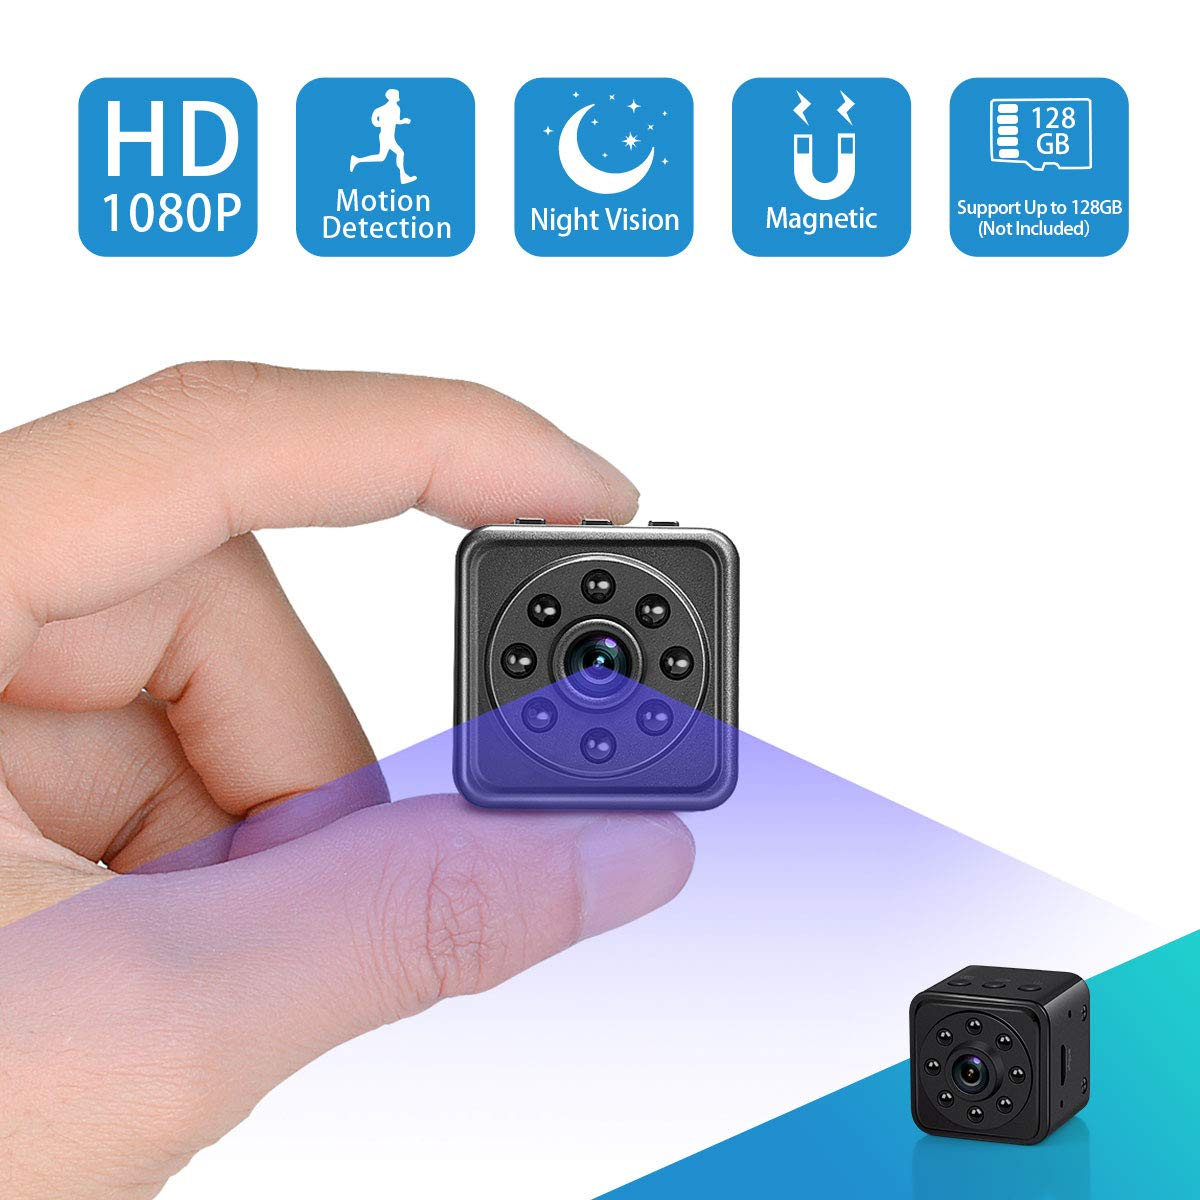 Spy Hidden Camera-SOOSPY 1080P Portable Mini Security Camera Nanny Cam with Night Vision/Motion Detection /420mAh Battery for Home and Office,Indoor/Outdoor Use-No WiFi Function by SOOSPY